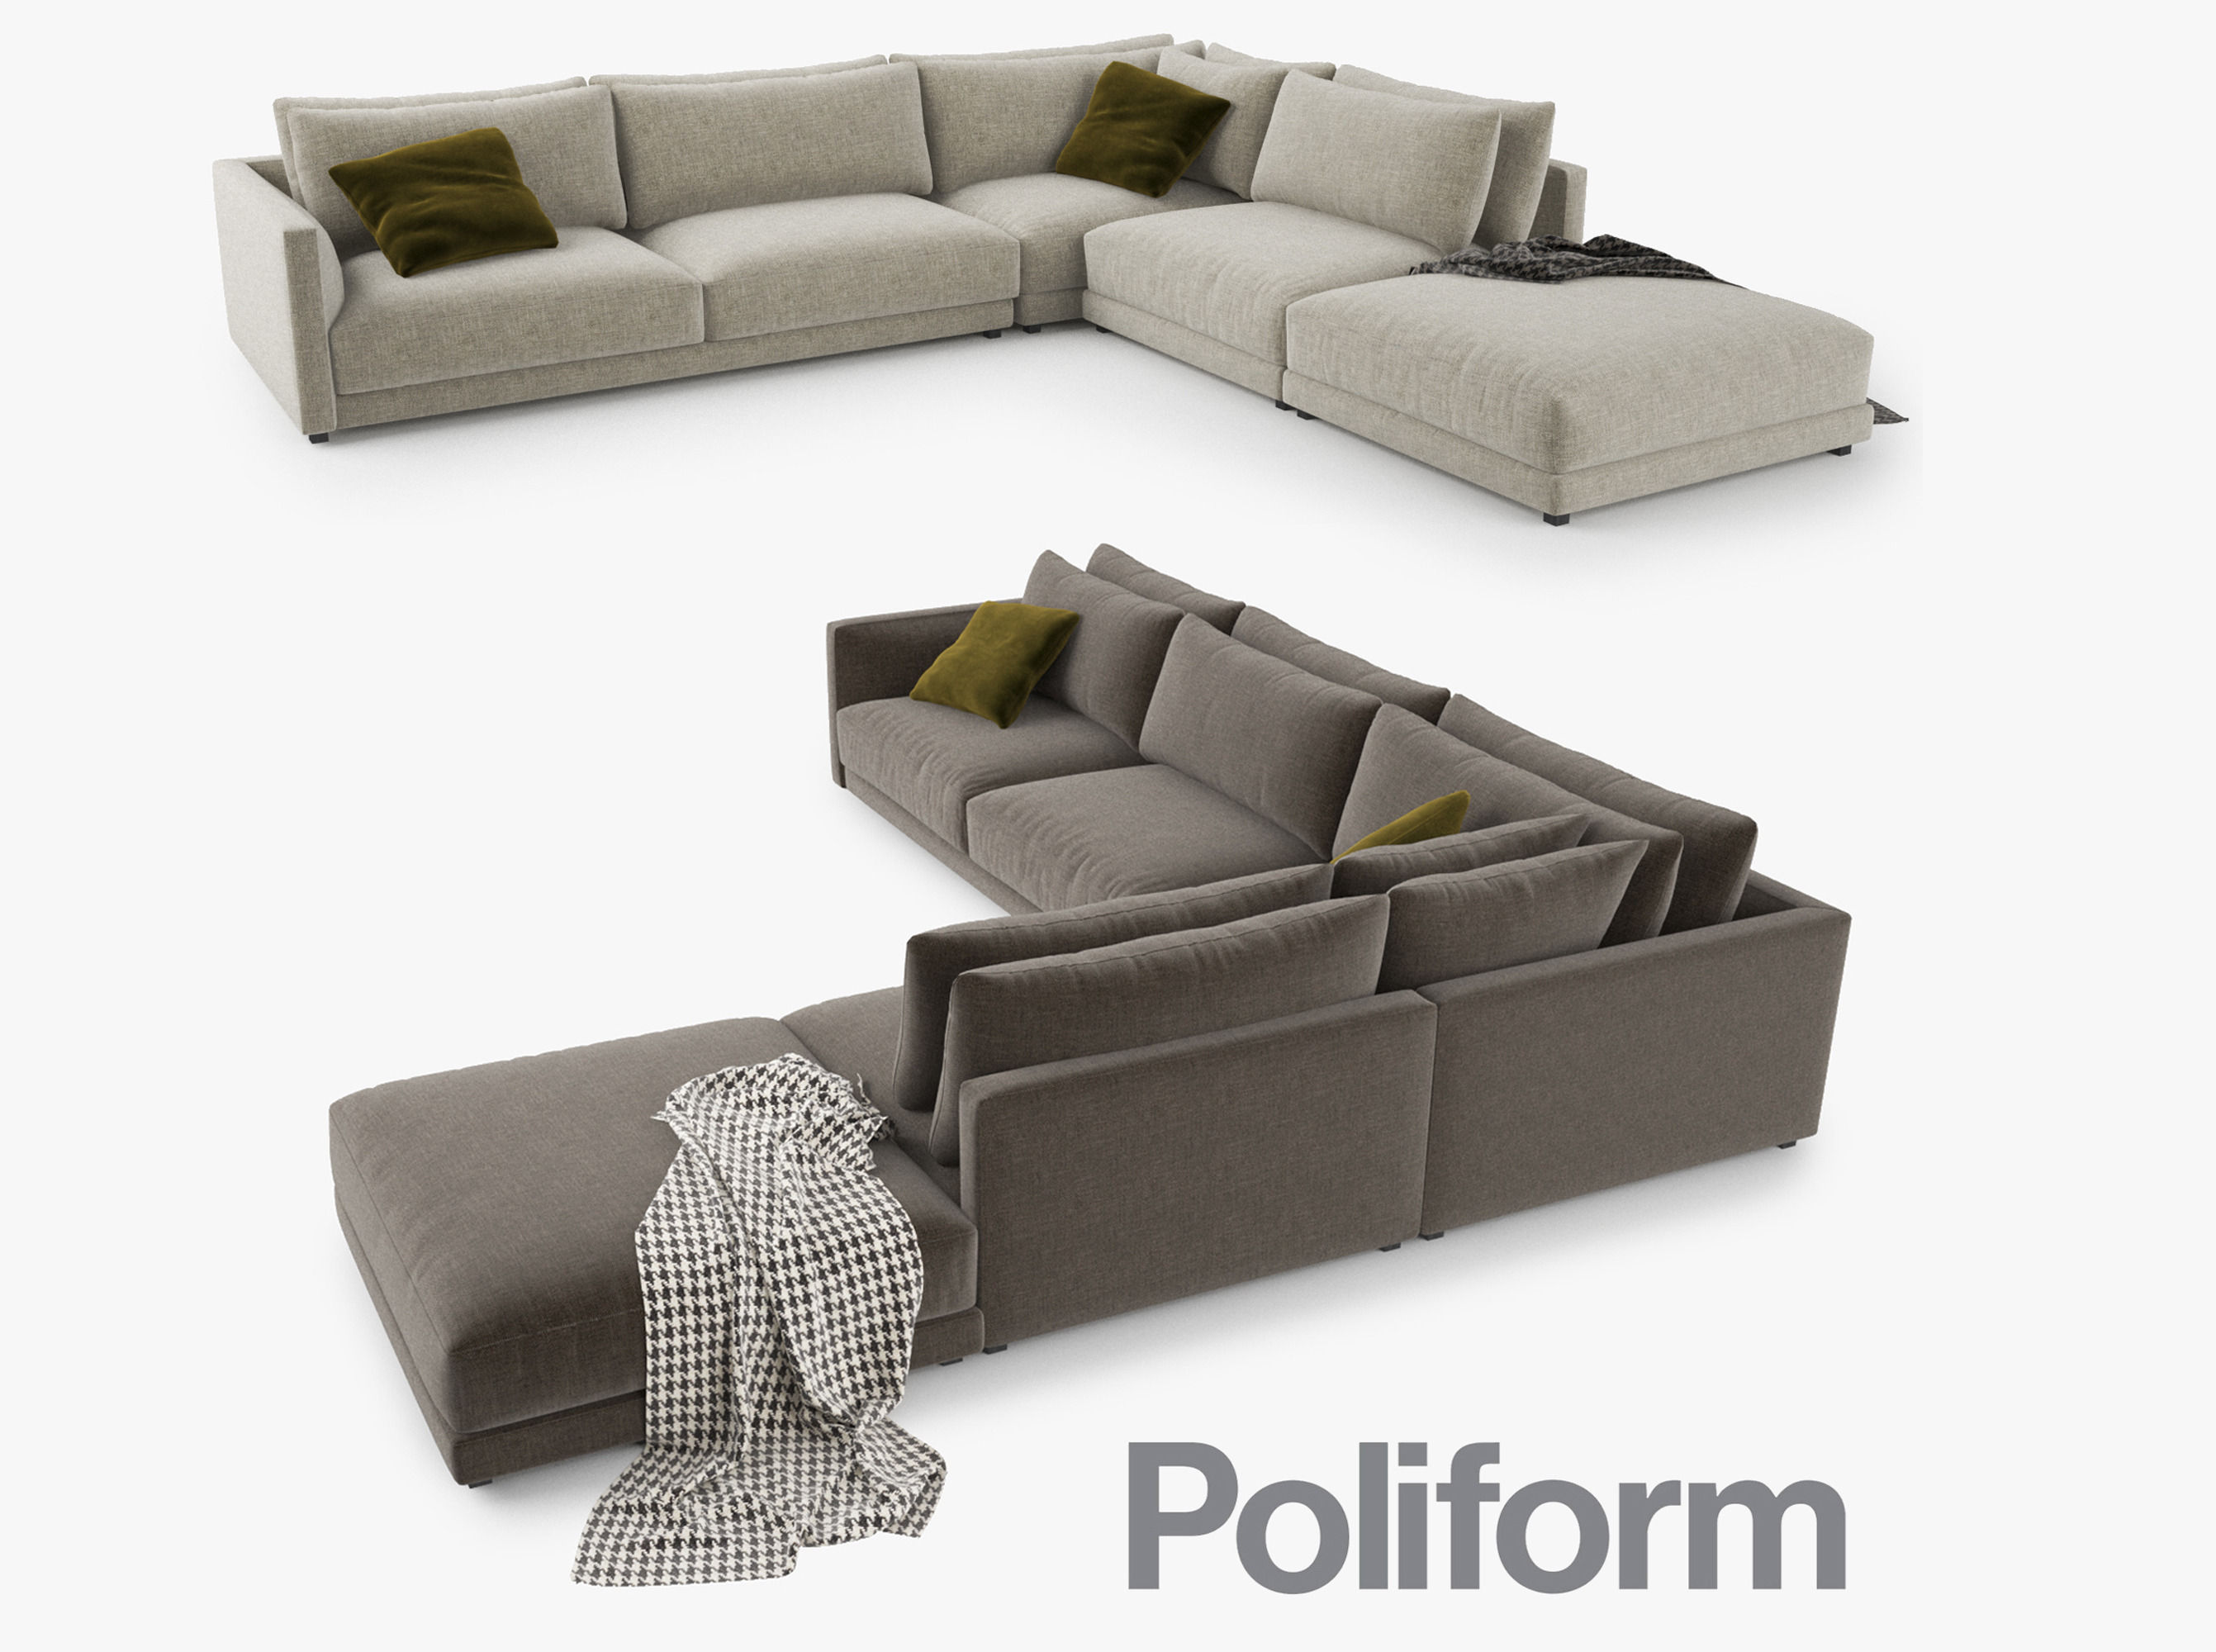 Poliform Bristol Sofa 3d Model Cgtrader